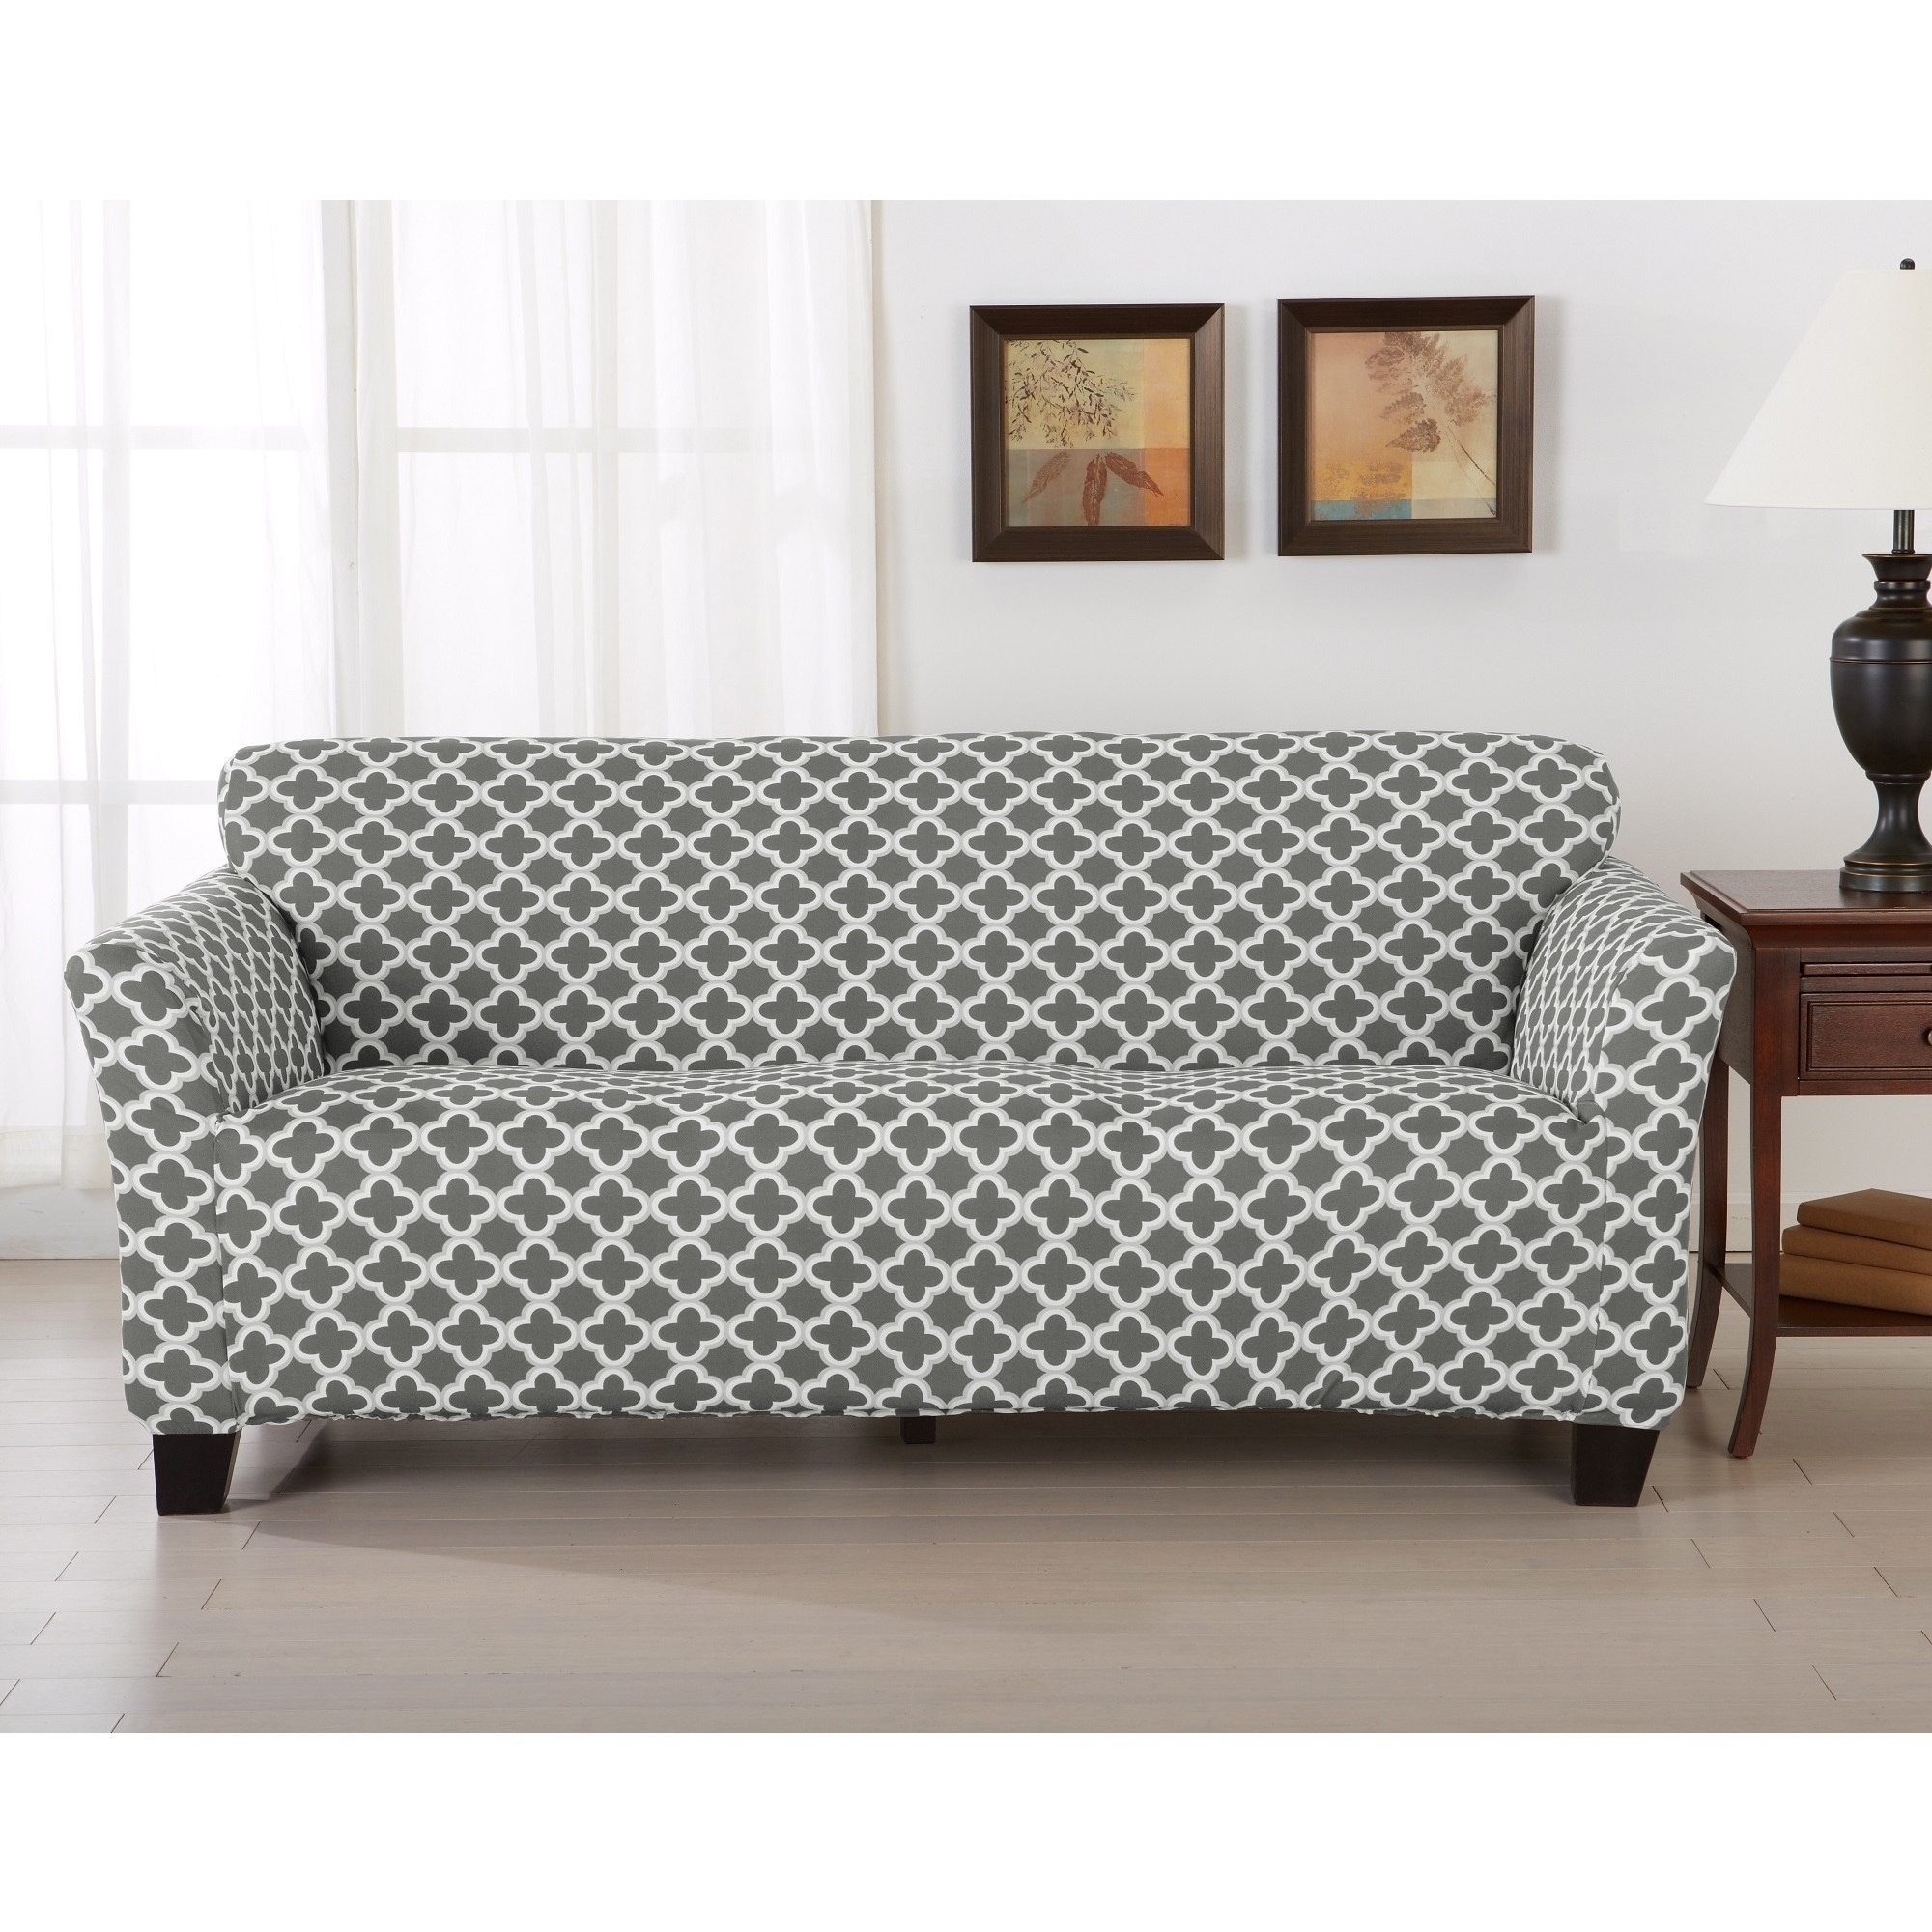 Home Fashion Designs Brenna Collection Stretch Form Ed Sofa Slipcover On Free Shipping Orders Over 45 14637980